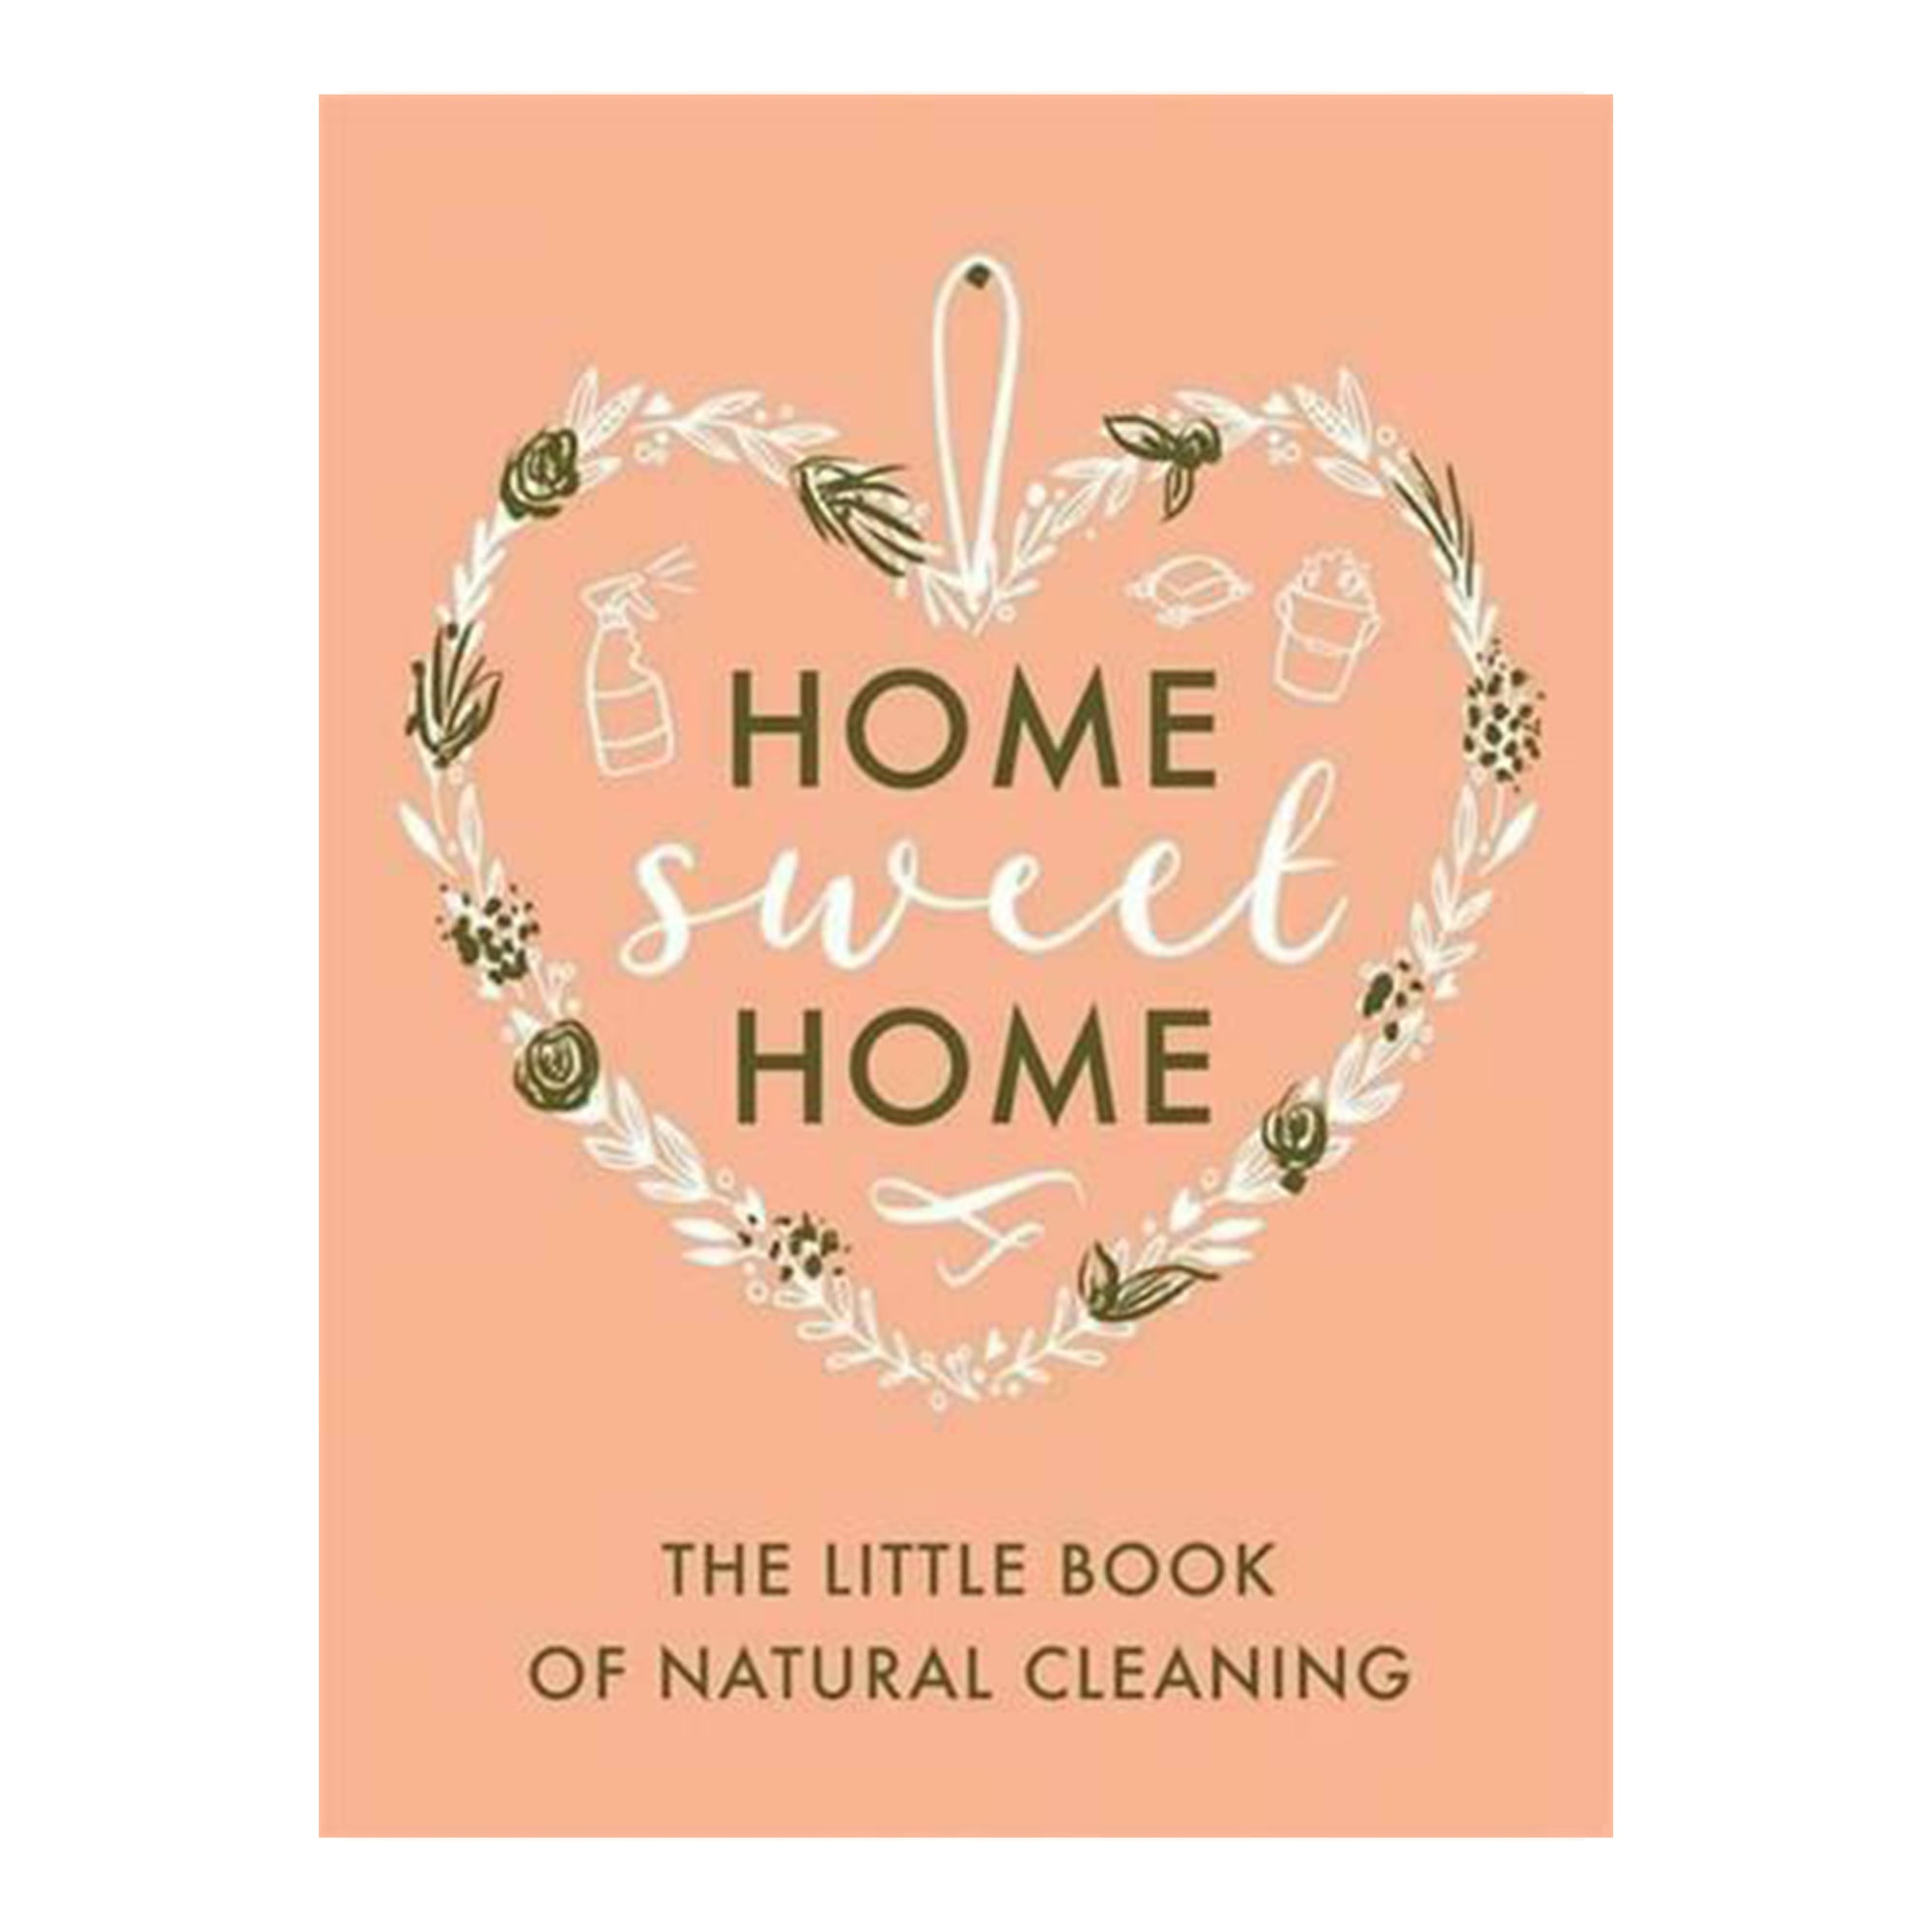 The Little Book of Natural Cleaning Book by Home Sweet Home - Scandi Minimal